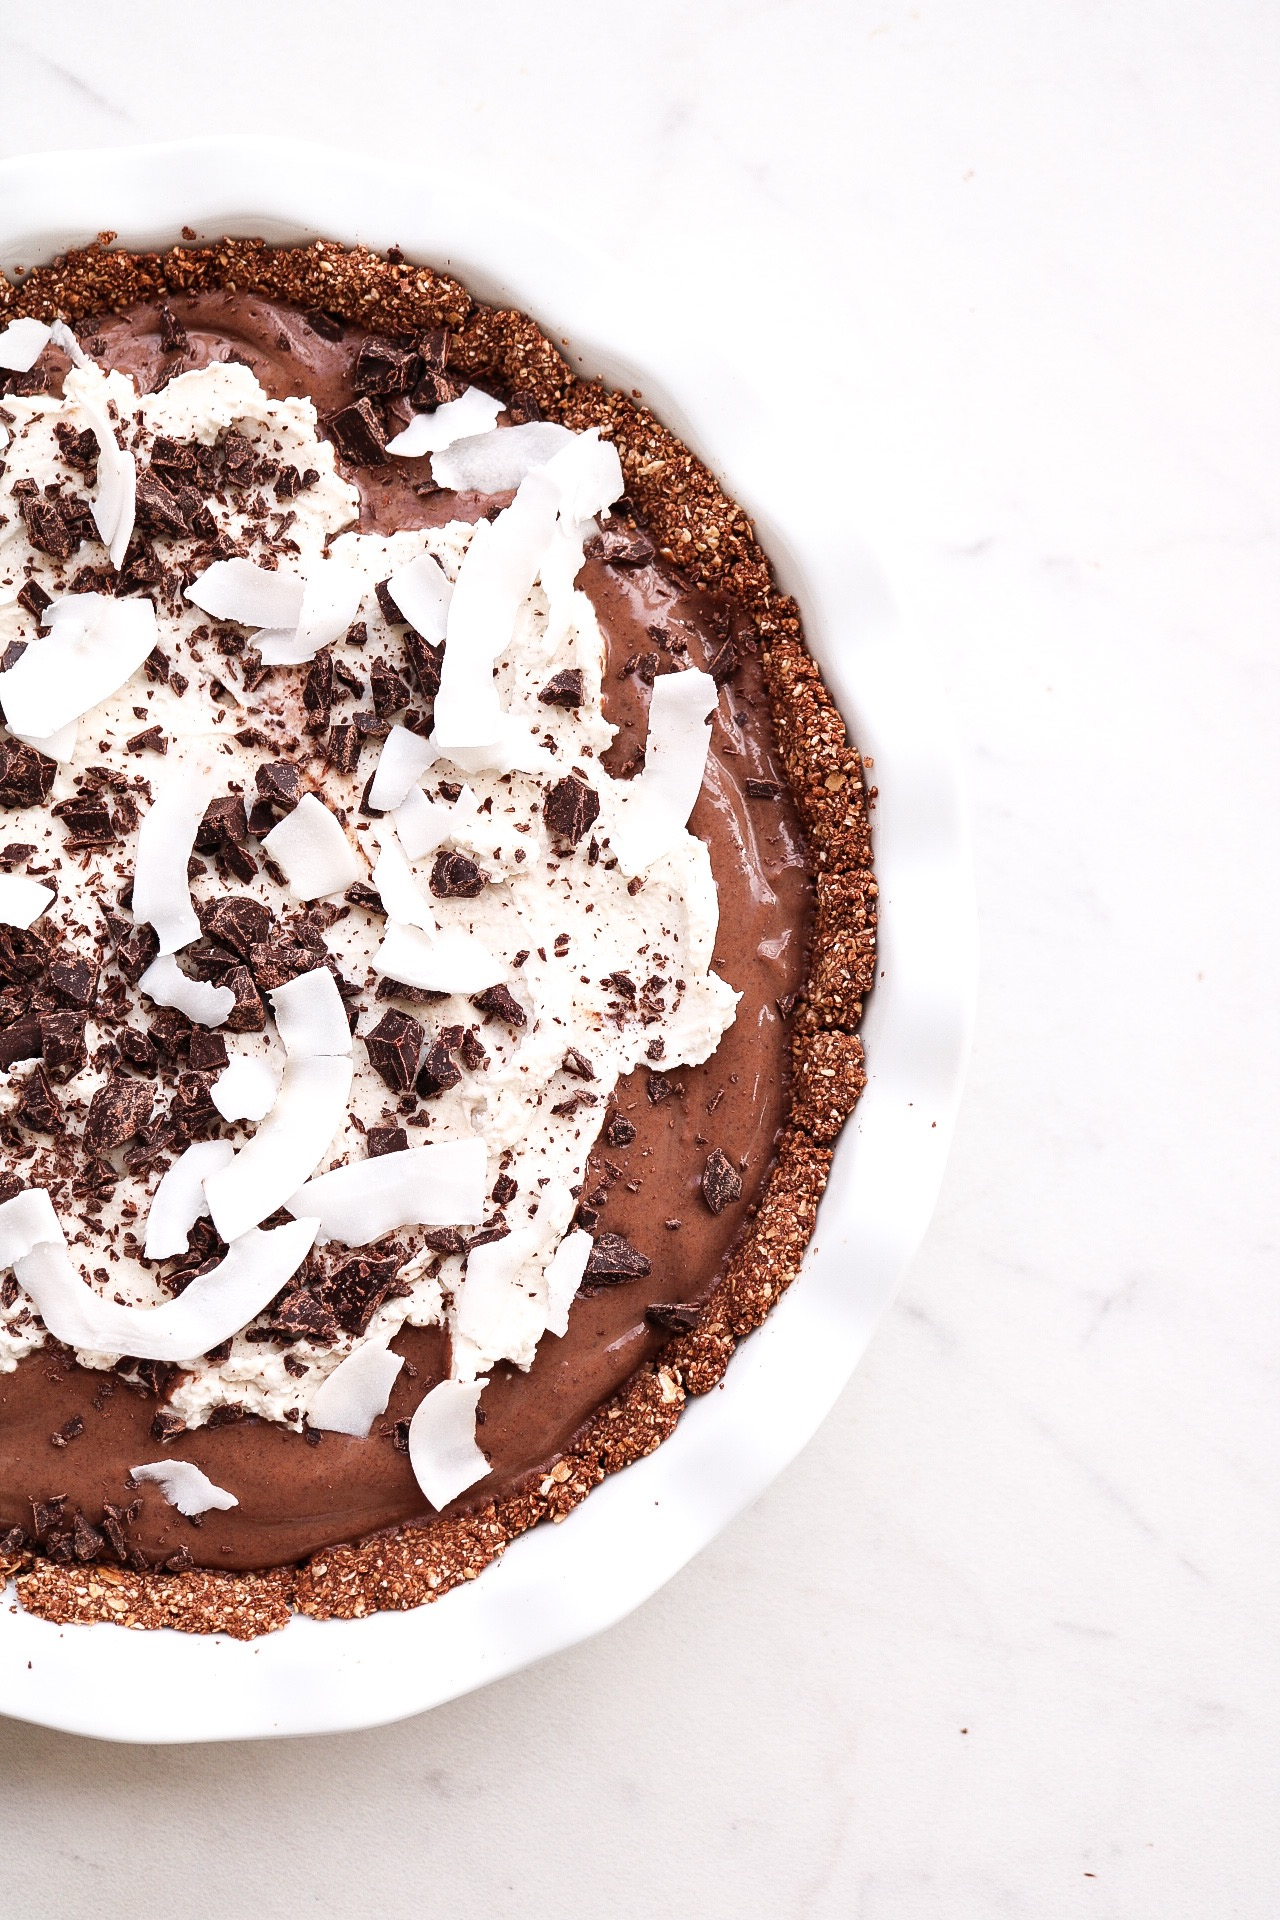 Chocolate Coconut Cream Pie (v & gf) - INGREDIENTS:CRUST:1.5 cups oats1/4 cup cacao powder1/2 tsp salt4 Tbsp maple syrup4 Tbsp melted coconut oilFILLING:1 package (16 oz) silken tofu1/4 cup cacao powder1/3 cup maple syrup1/2 cup melted dark chocolate1/2 ripe avocadoCOCONUT WHIP:1 can chilled coconut cream1 5.3 oz cup vegan vanilla yogurt1-2 Tbsp maple syrupINSTRUCTIONS:For the crust, preheat the oven to 350F. In a food processor, blend your oats into a flour. In a bowl, combine all of the remaining crust ingredients until a dough has formed - form the crust into your pie pan, and bake for about 20 minutes. While the crust is baking, in a blender combine your filling ingredients. Get rid of excess water with the silken tofu the best you can before placing into the blender. Make sure your crust has cooled before adding in the pudding filling. As for the coconut whipped cream, whip together your coconut cream, yogurt, and maple syrup until you get the desired consistency. Decorate the pie as you wish, and place into the fridge for at least two hours up to overnight.